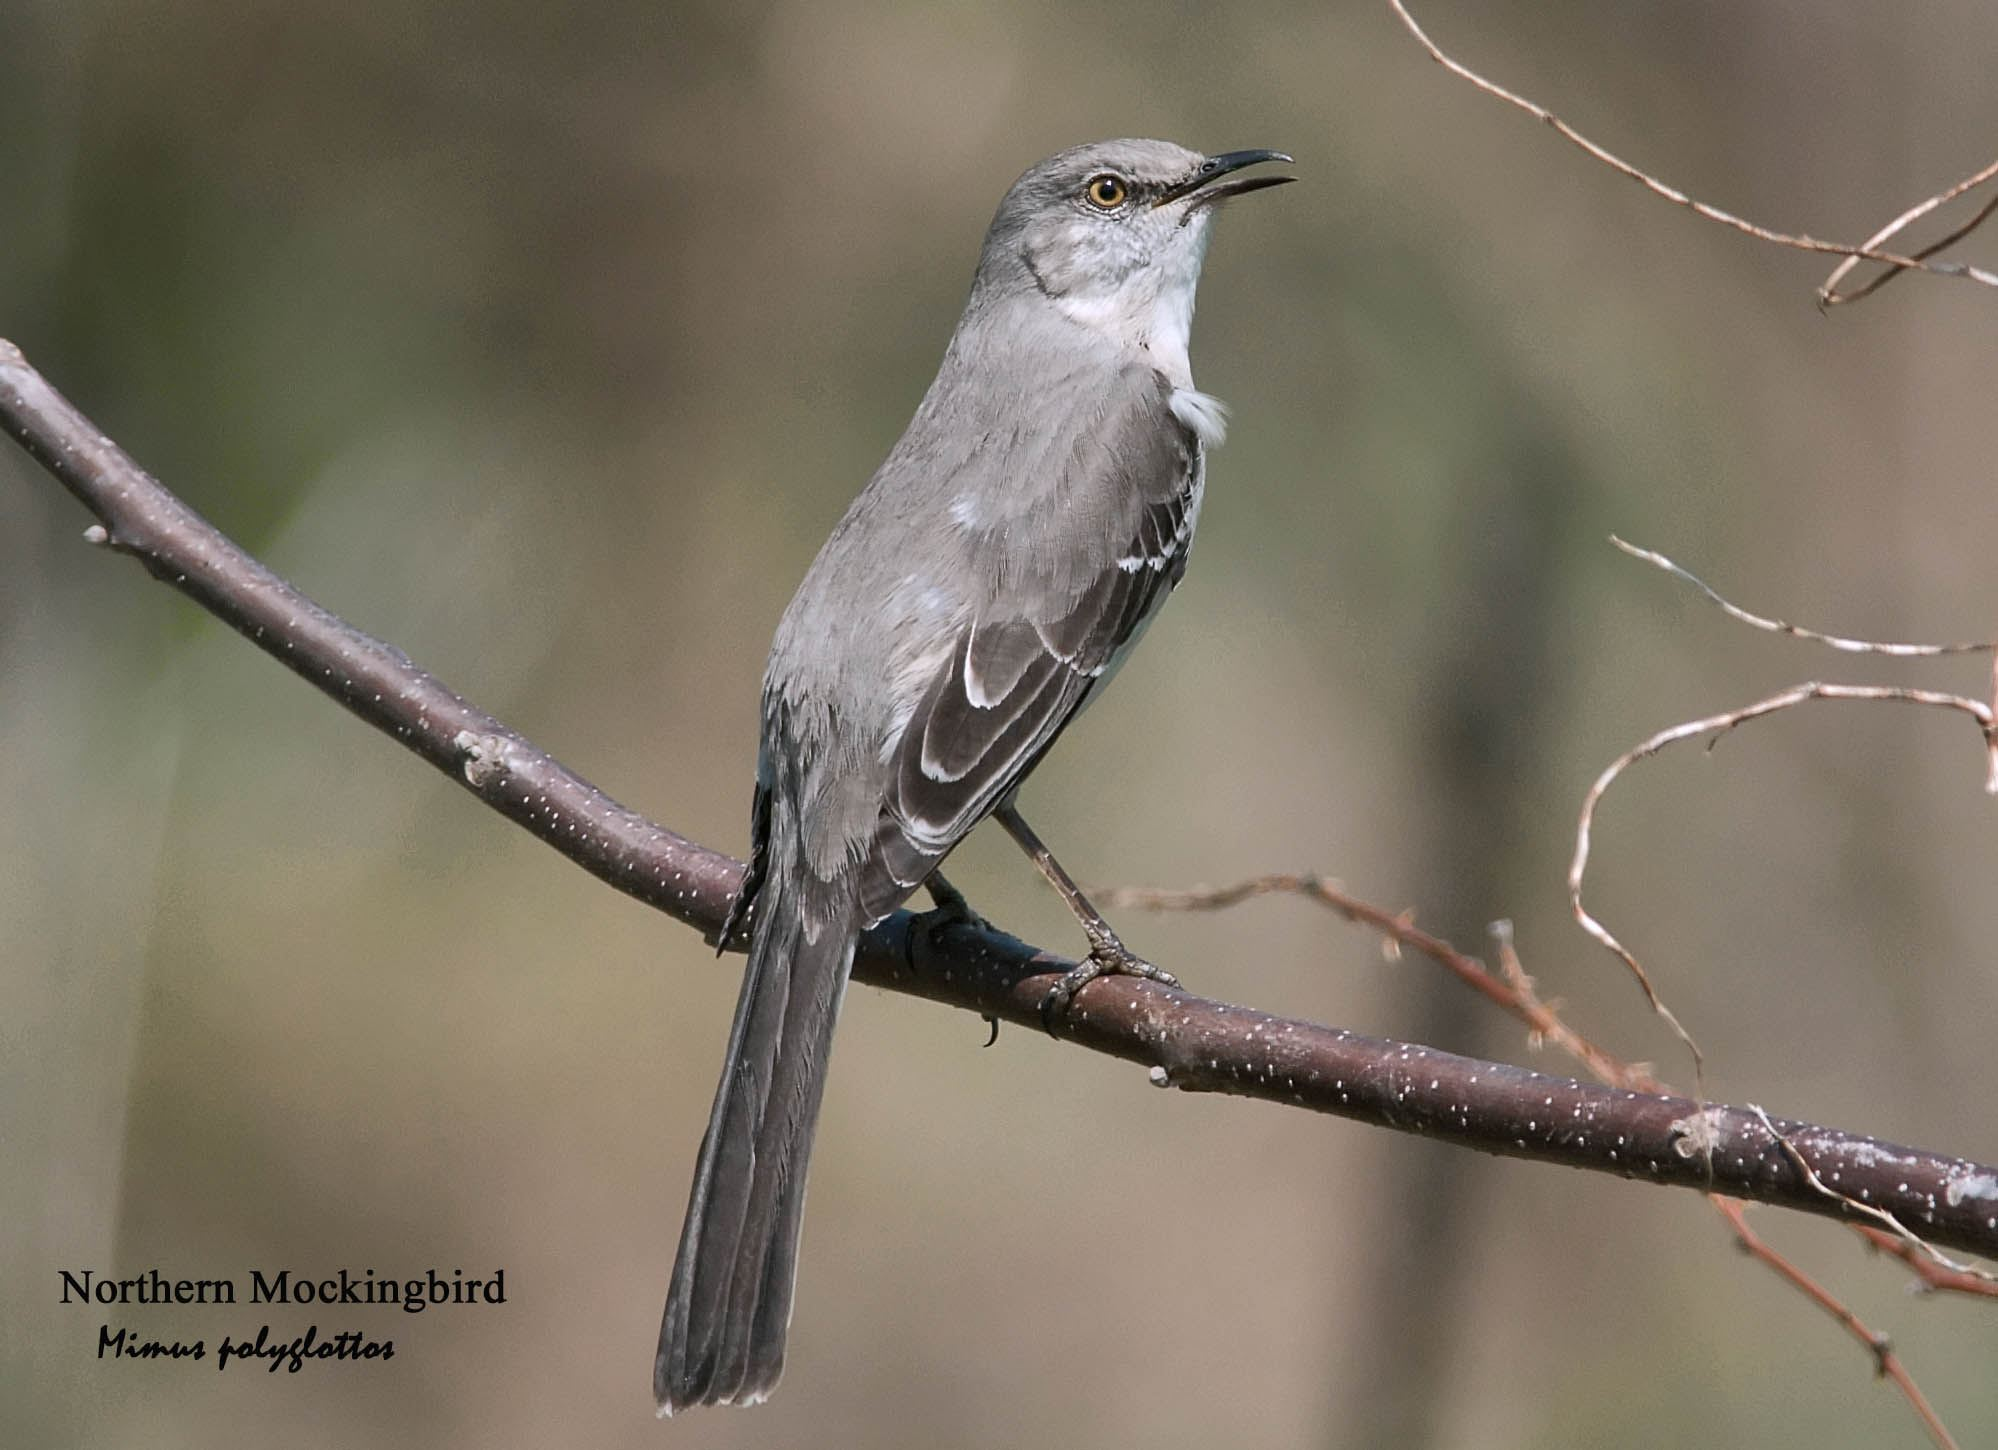 Northern Mockingbird - 2